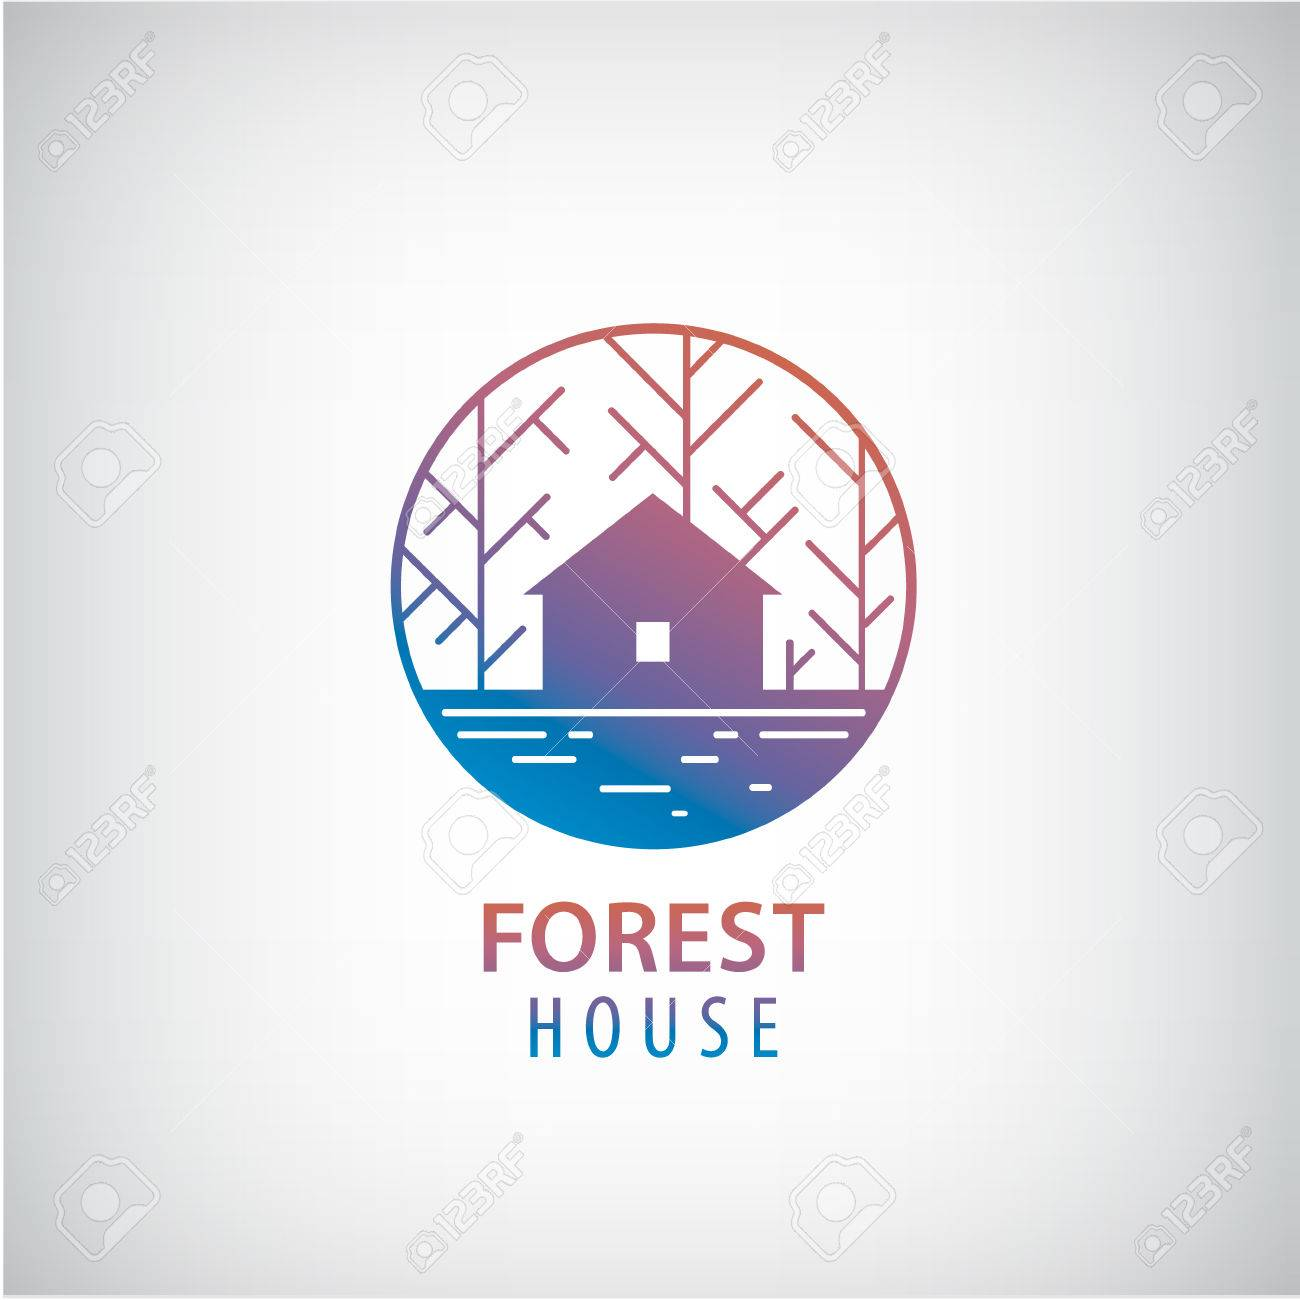 Good Vector   Vector House In The Woods Logo. Cabin In The Forest Silhouette  Logotype, Property Icon